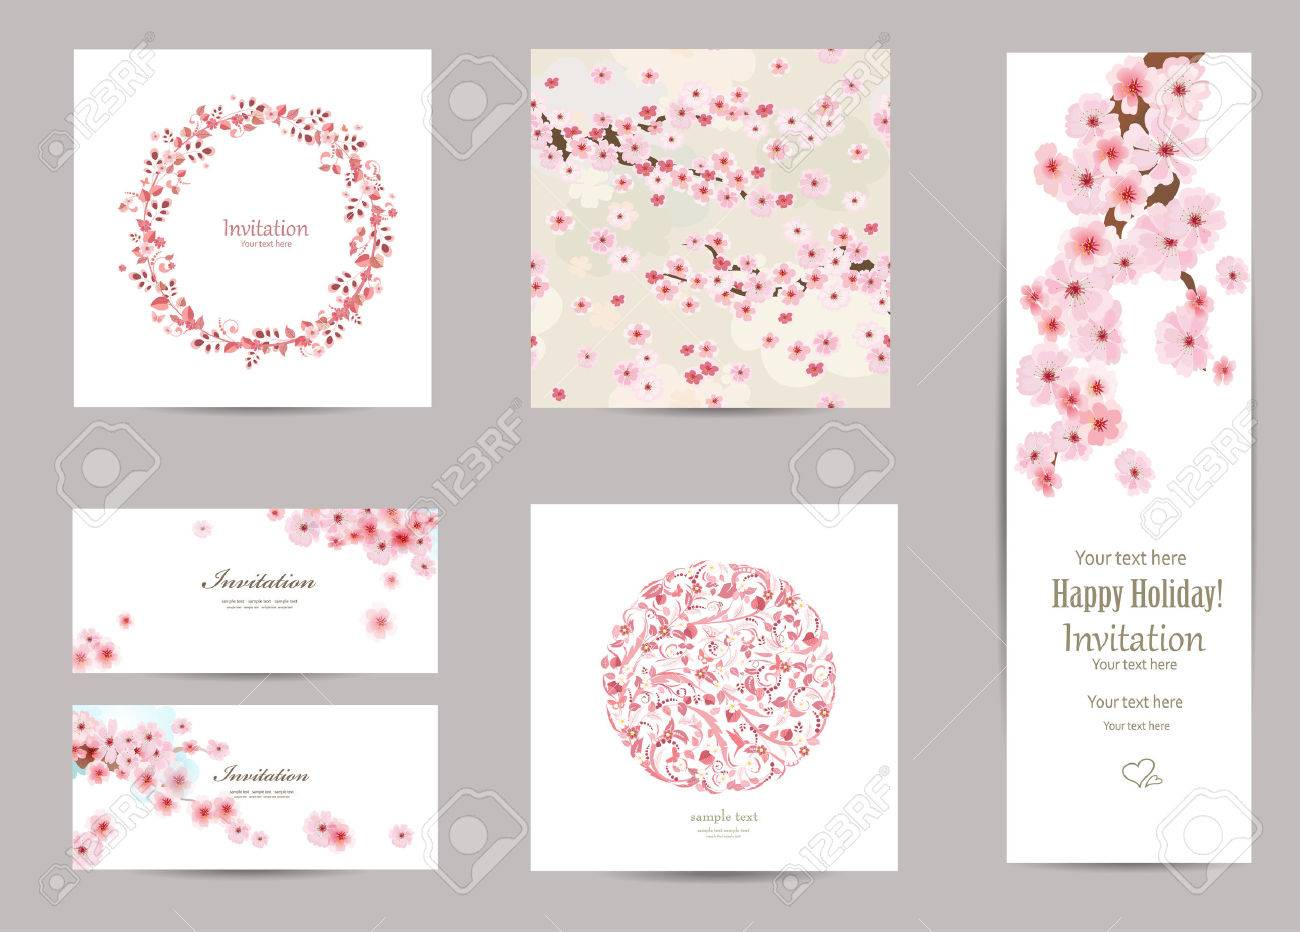 collection of greeting cards with a blossom sakura for your design. seamless texture with japanese floral pattern - 50254998